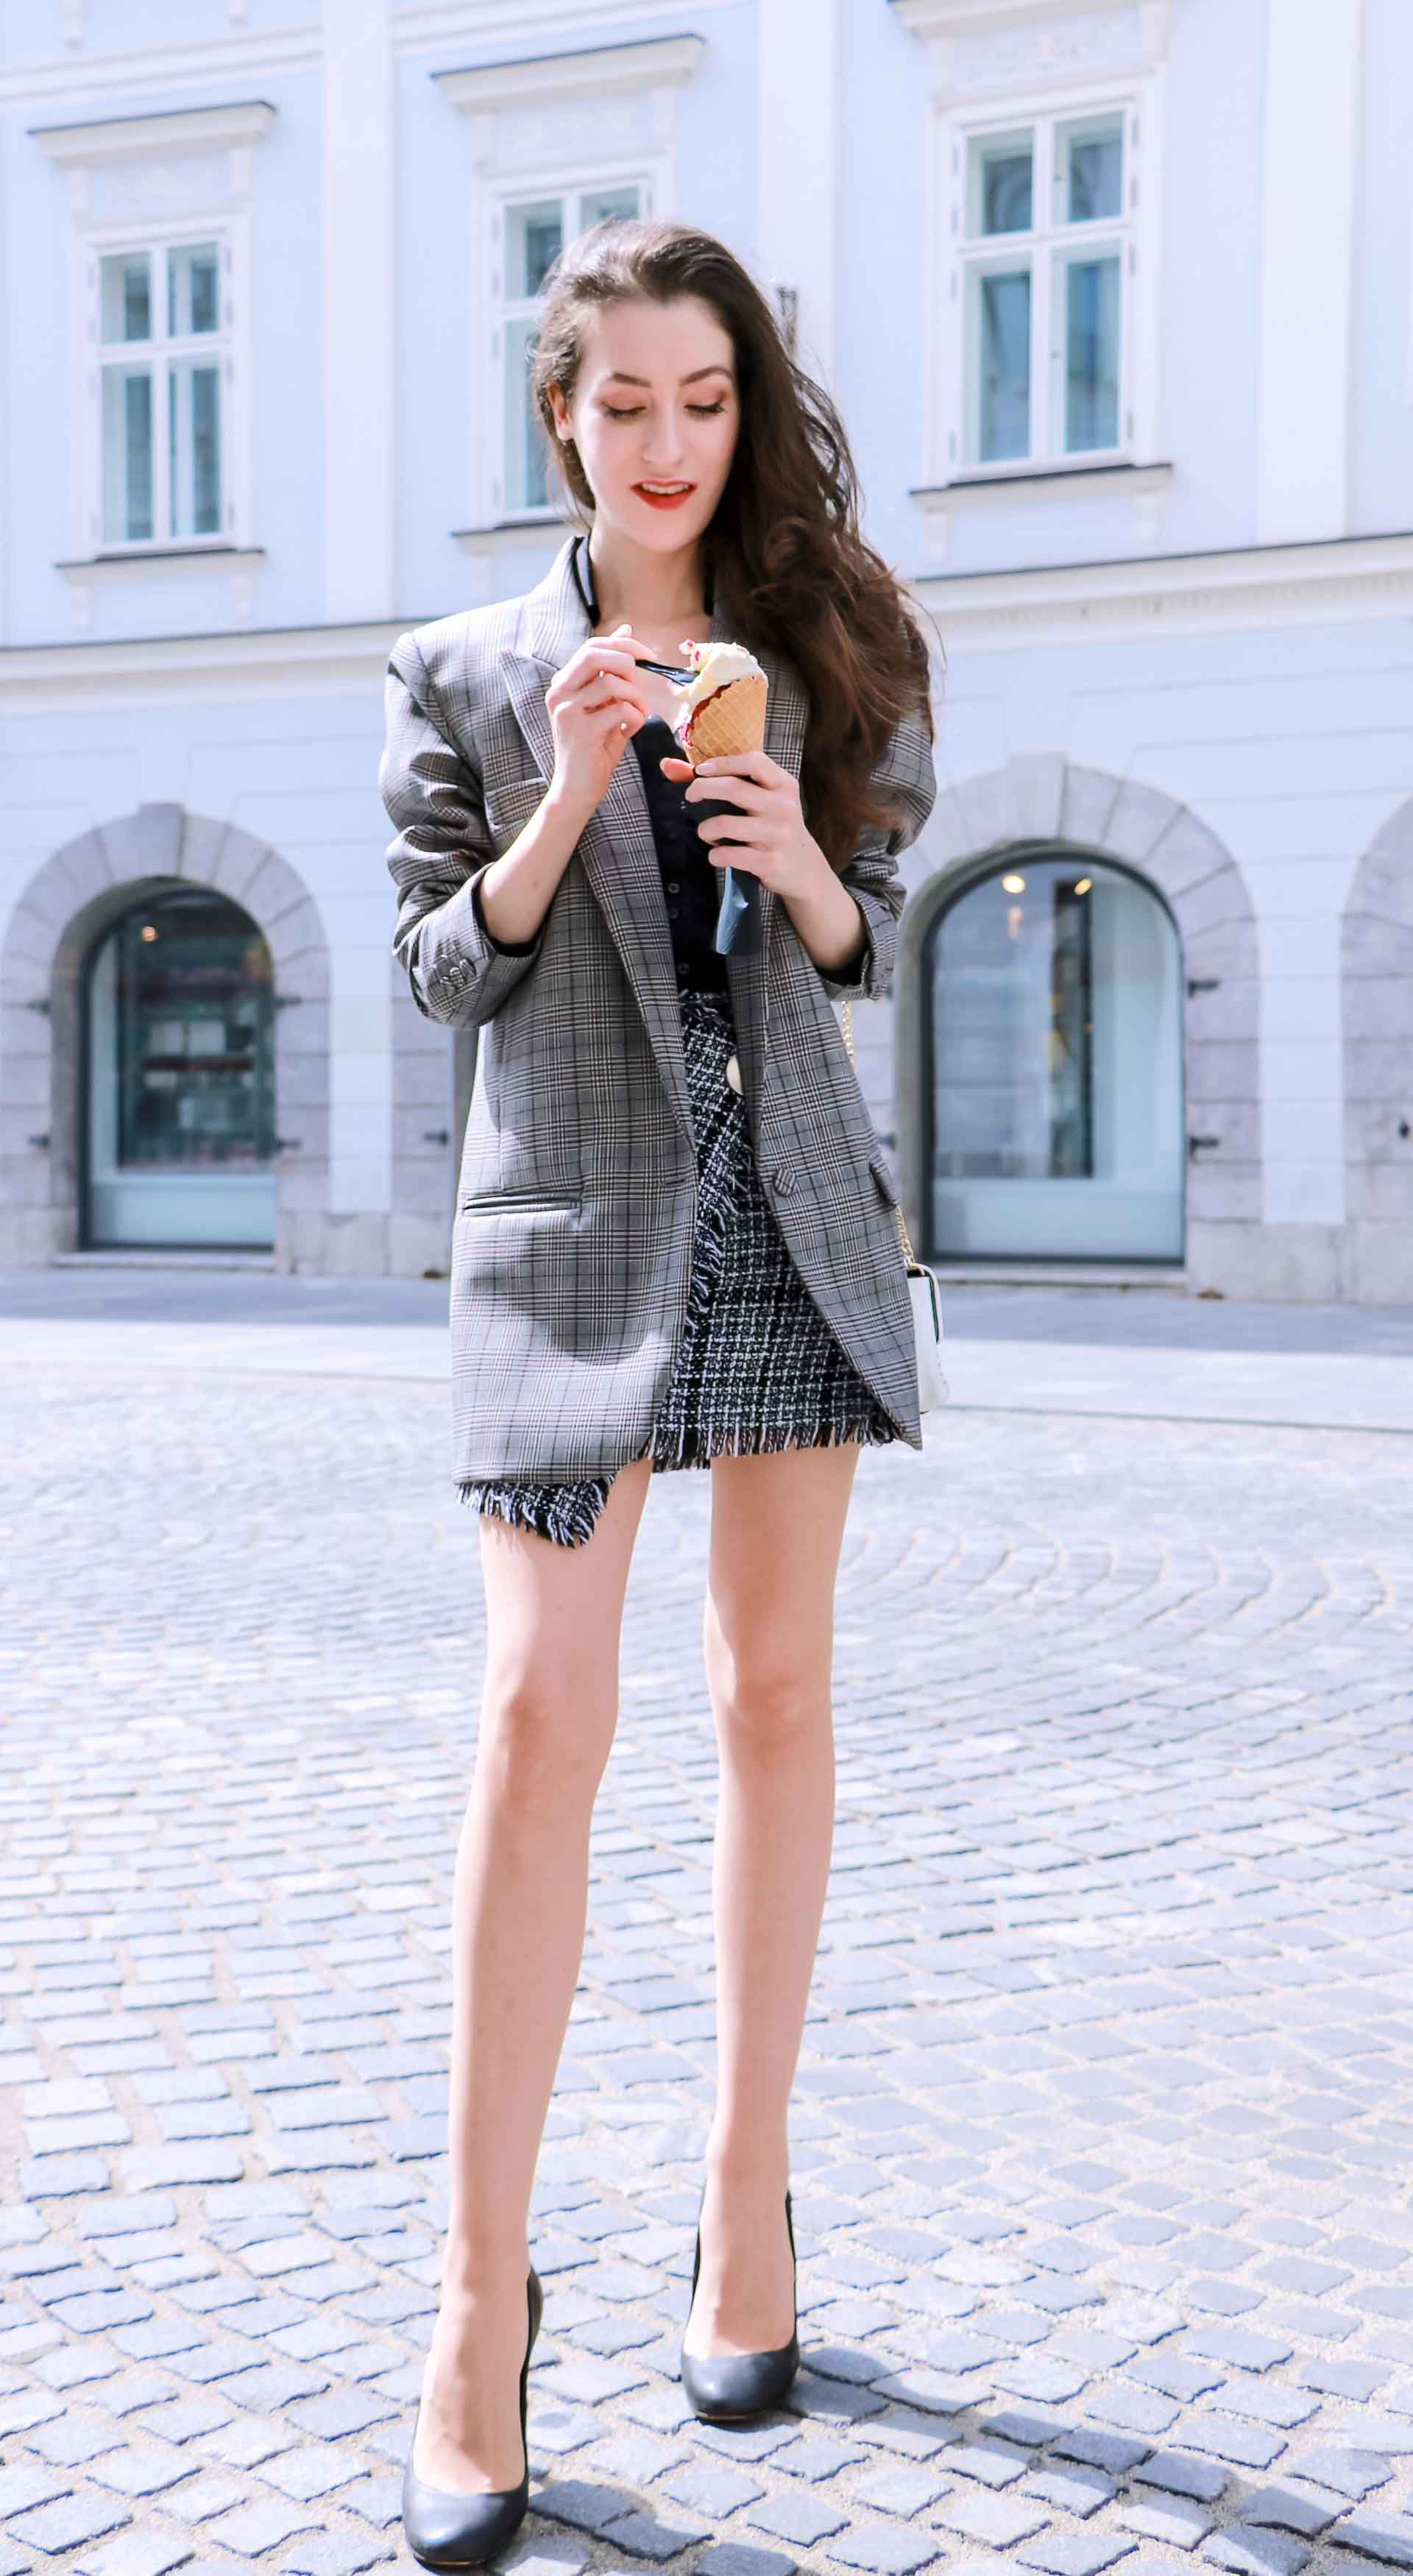 Fashion Blogger Veronika Lipar of Brunette from Wall Street wearing Erika Cavallini oversized boyfriend plaid blazer with short tweed black and white mini skirt from streets, black pumps and white chain strap shoulder bag while eating ice cream